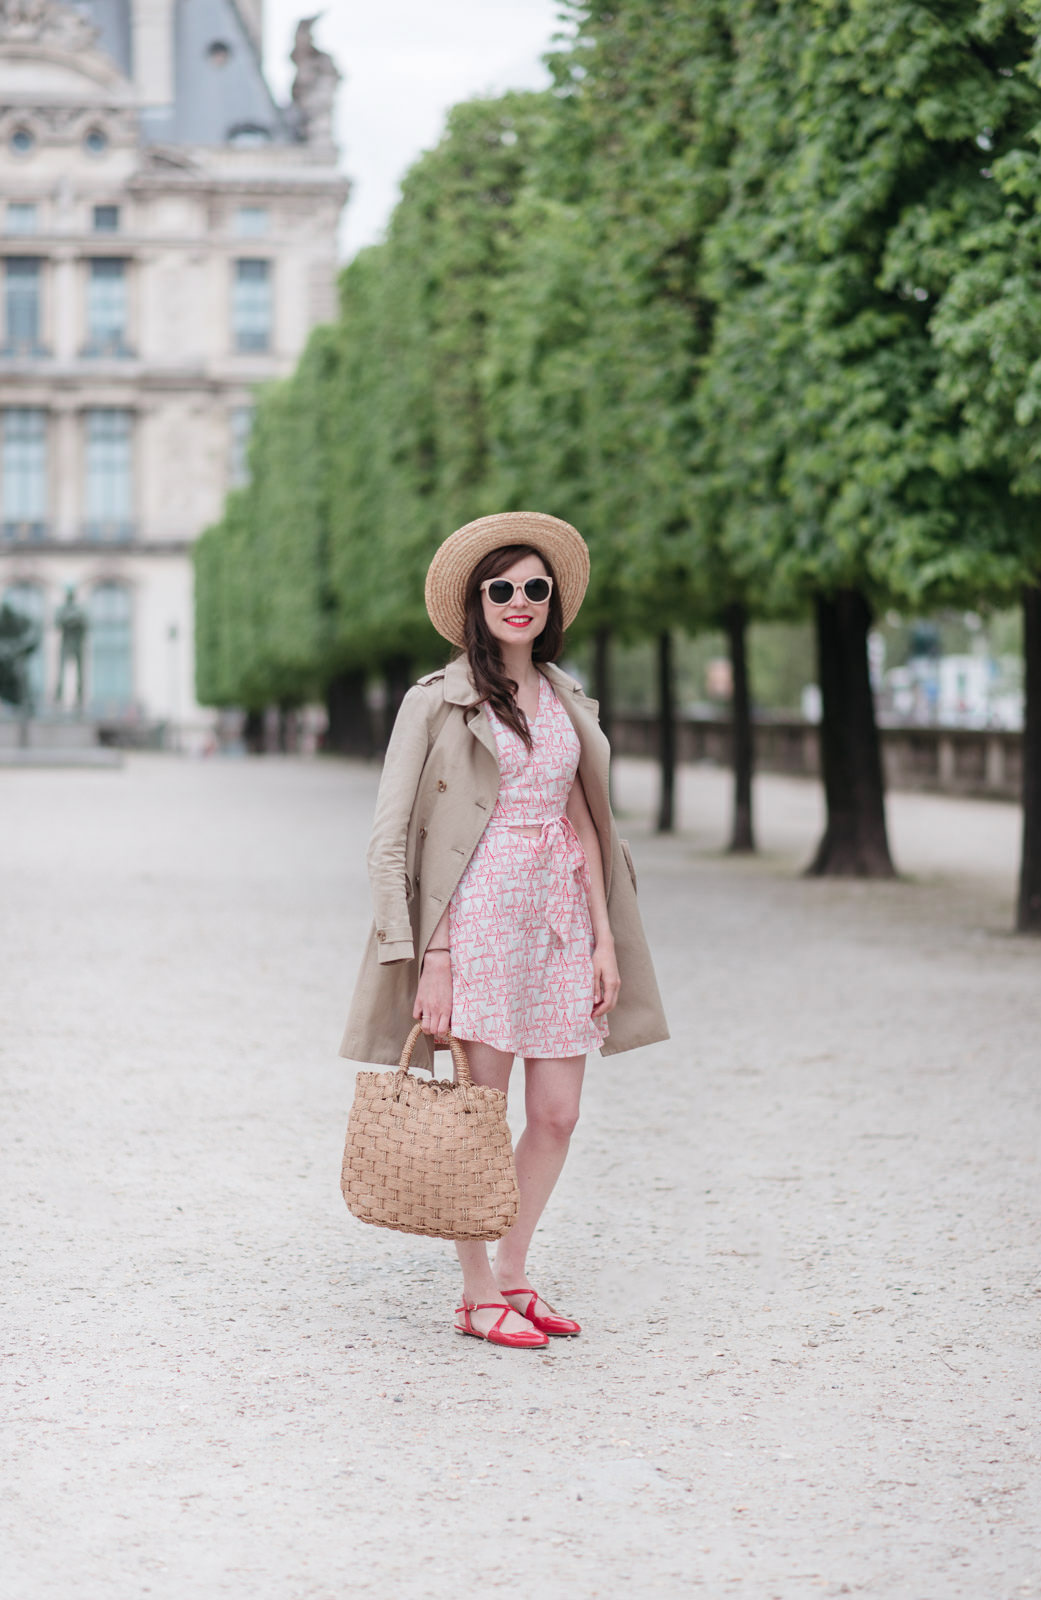 Blog-Mode-And-The-City-Looks-la-robe-a-petits-bateaux